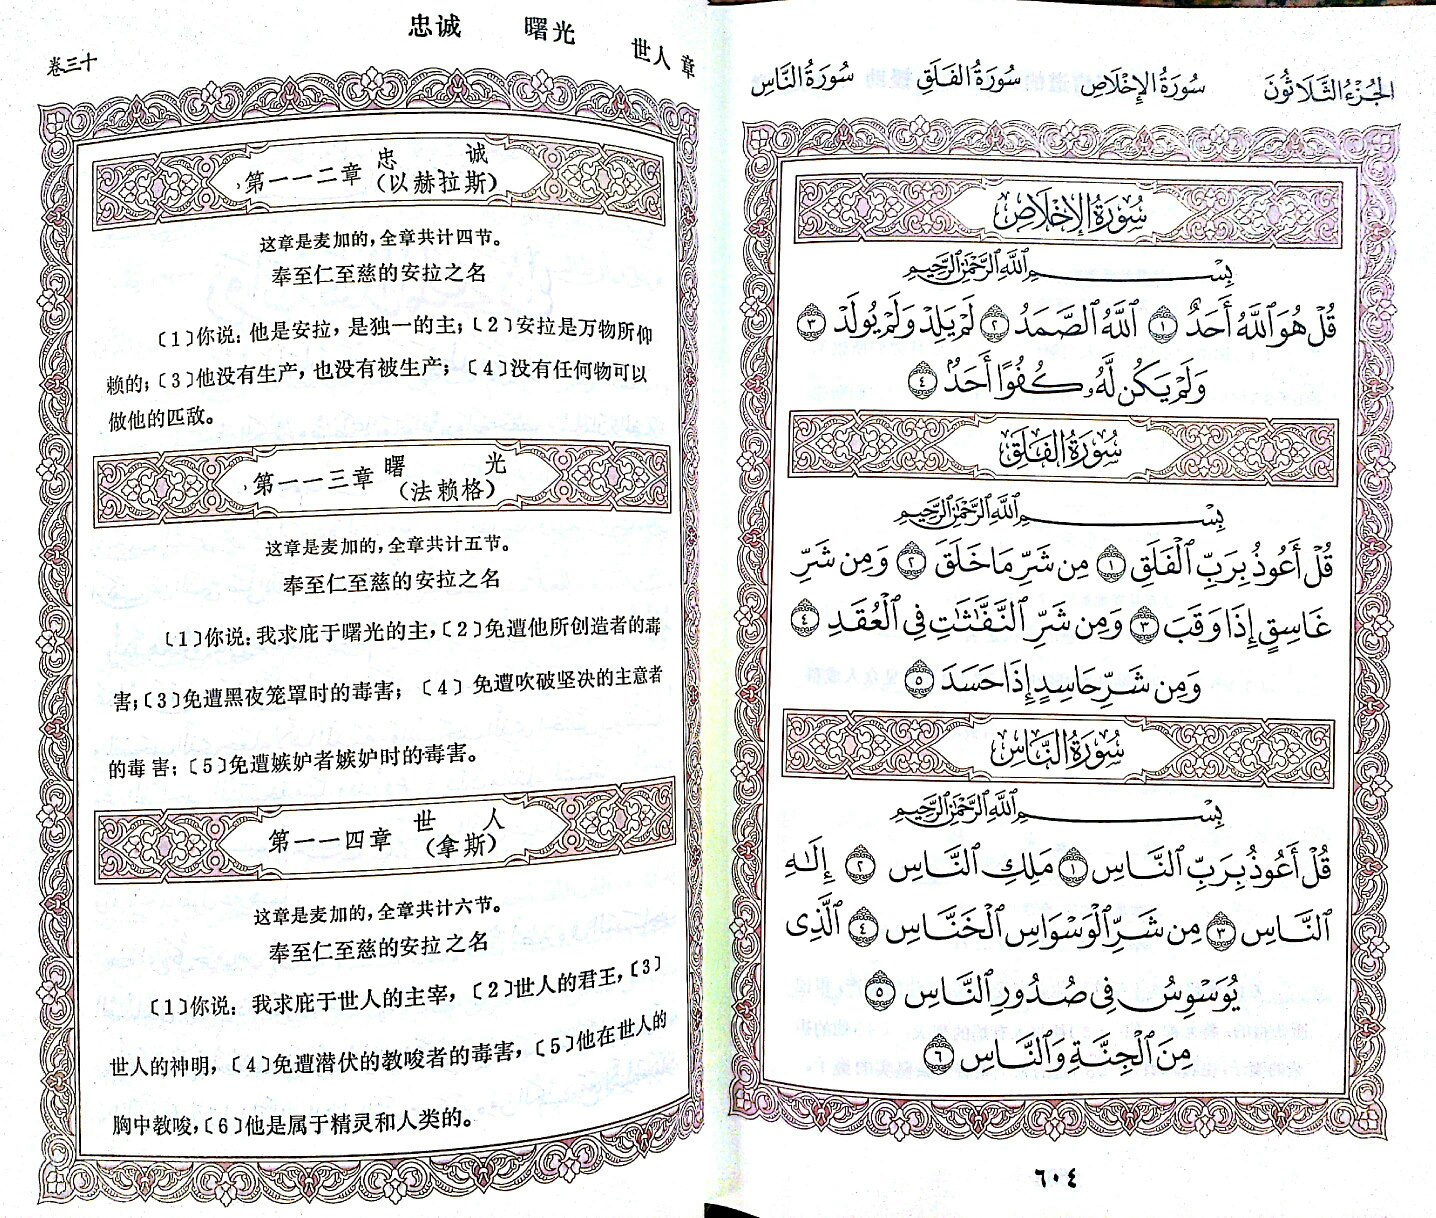 quran_china_01